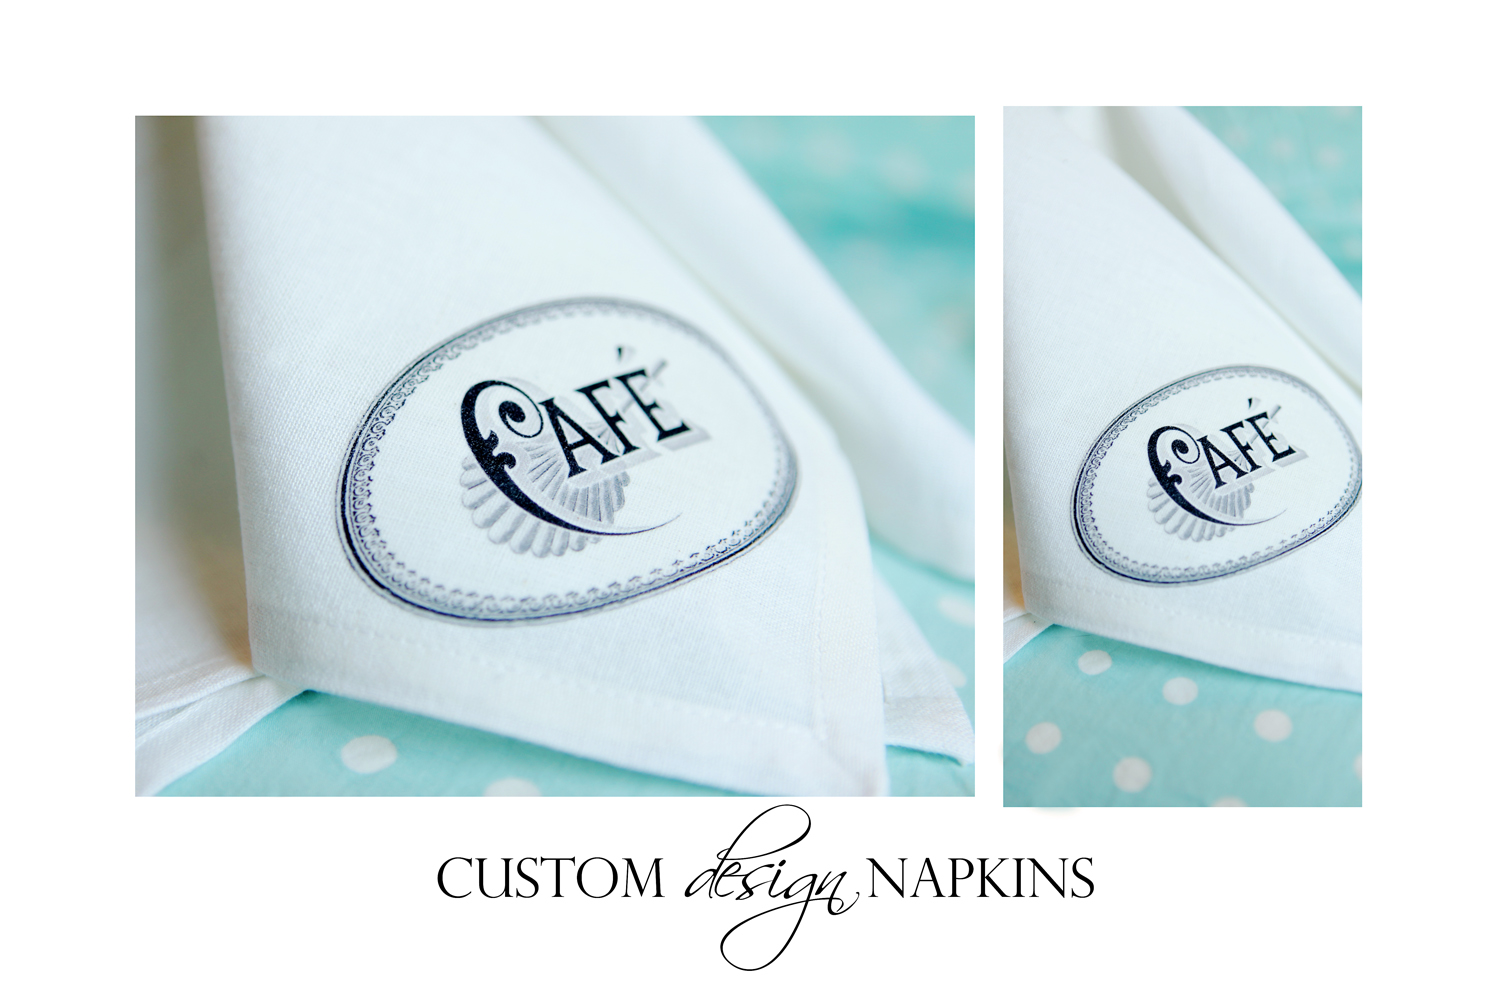 custom design napkins